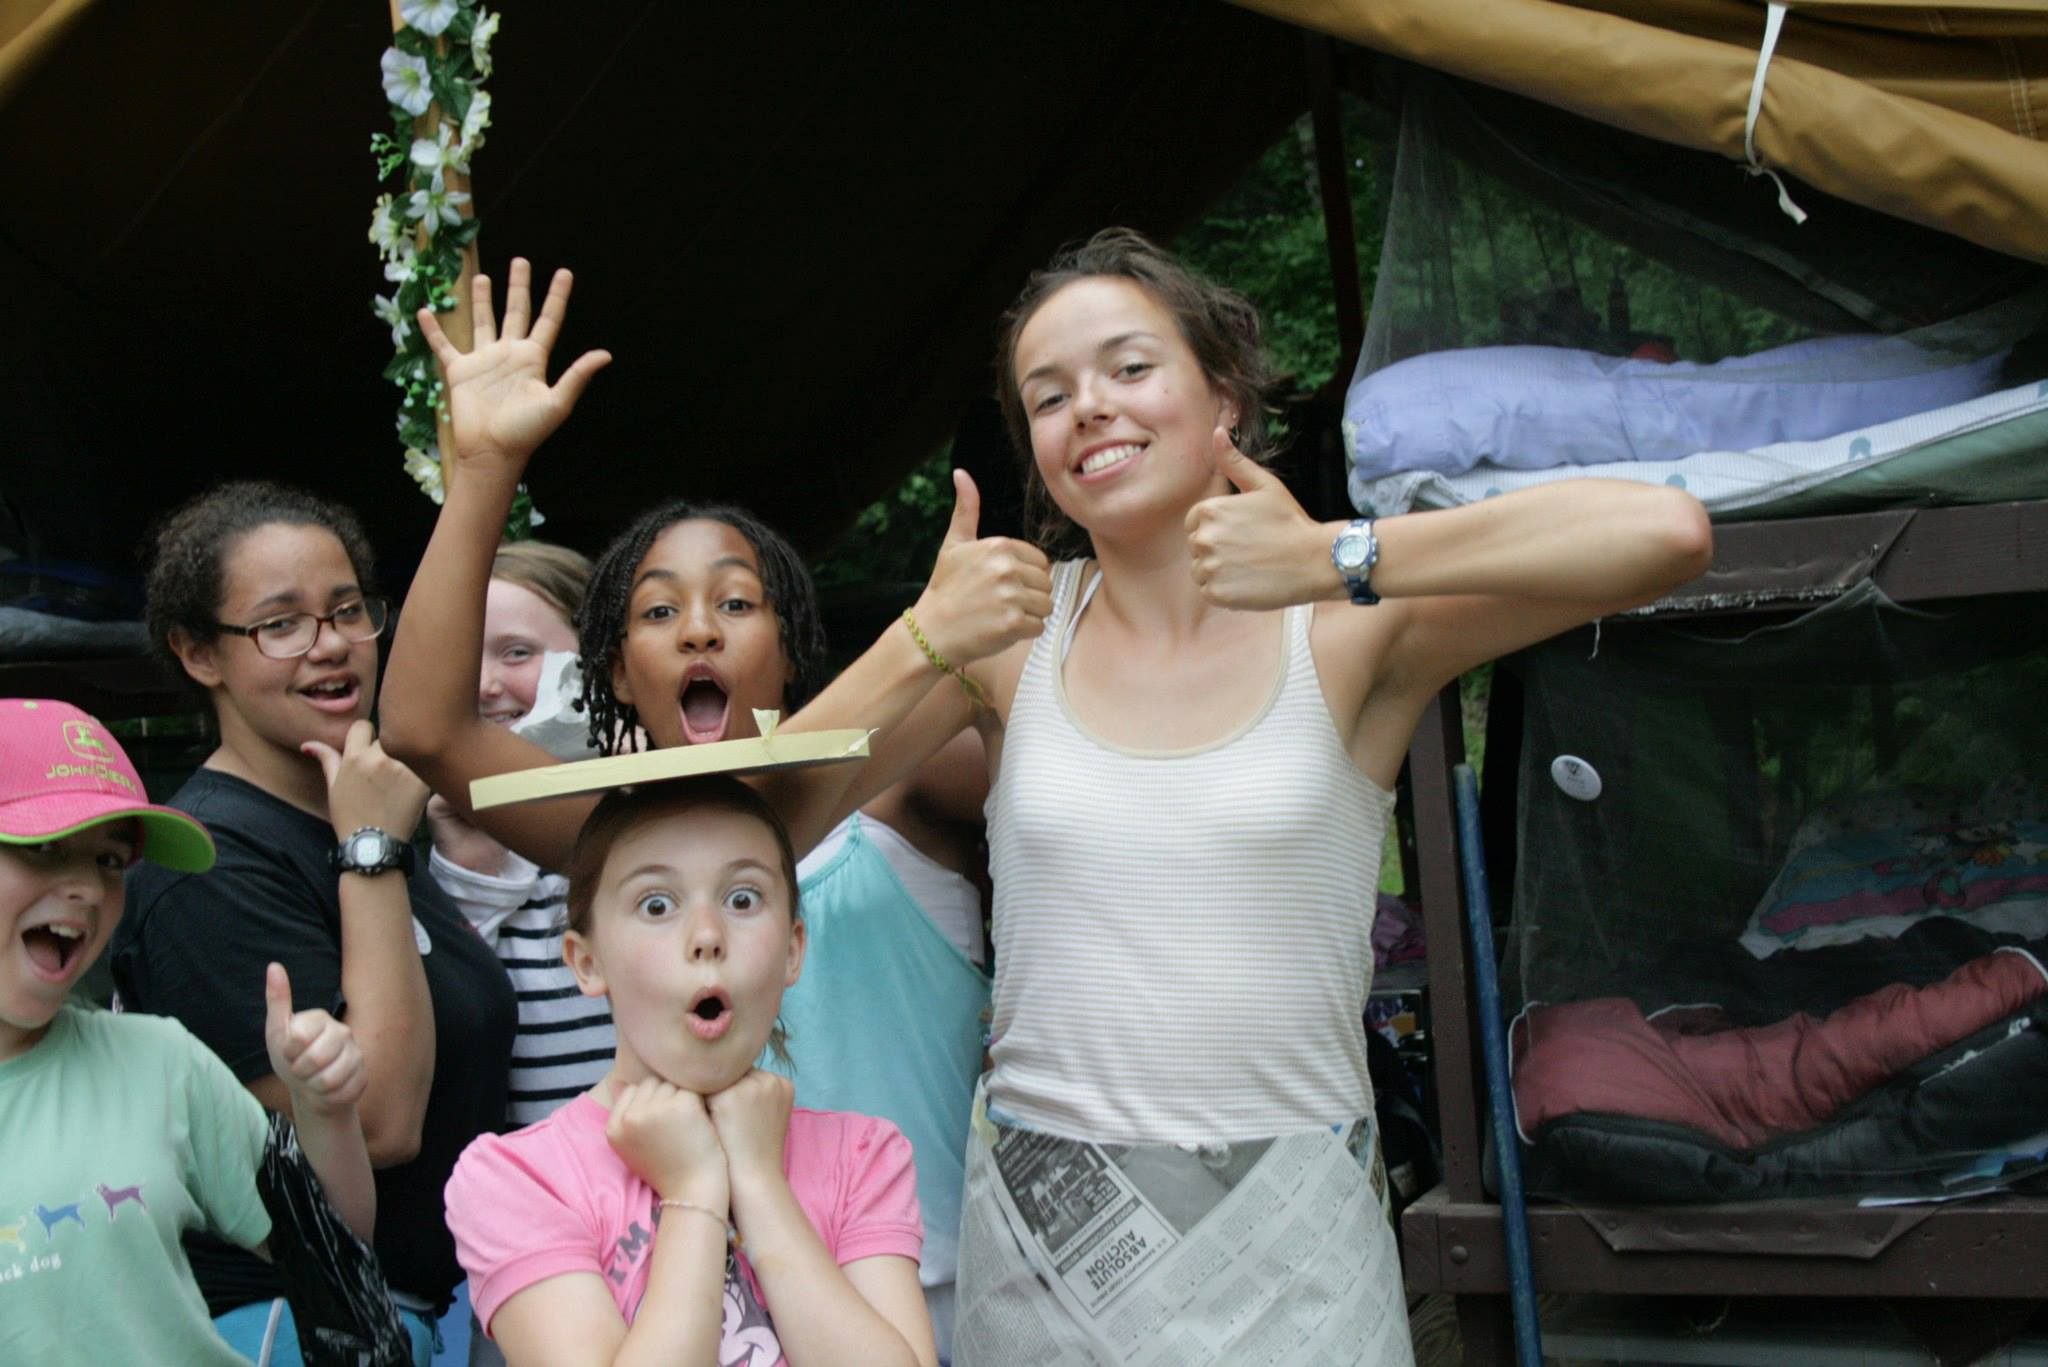 Than to occupy children in the camp Council counselor